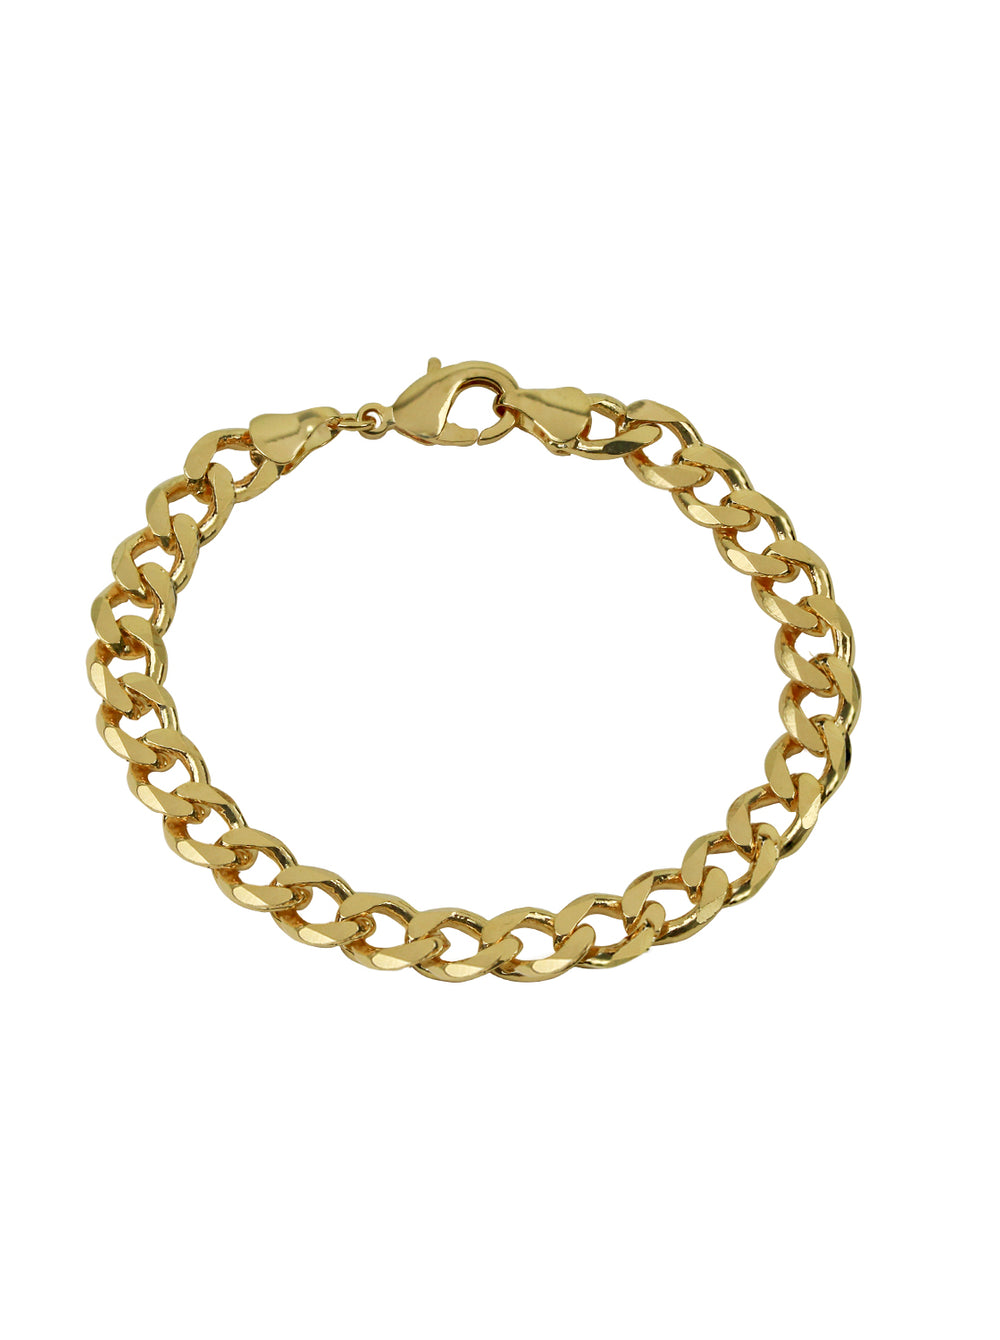 THE MID SIZE CURB BRACELET